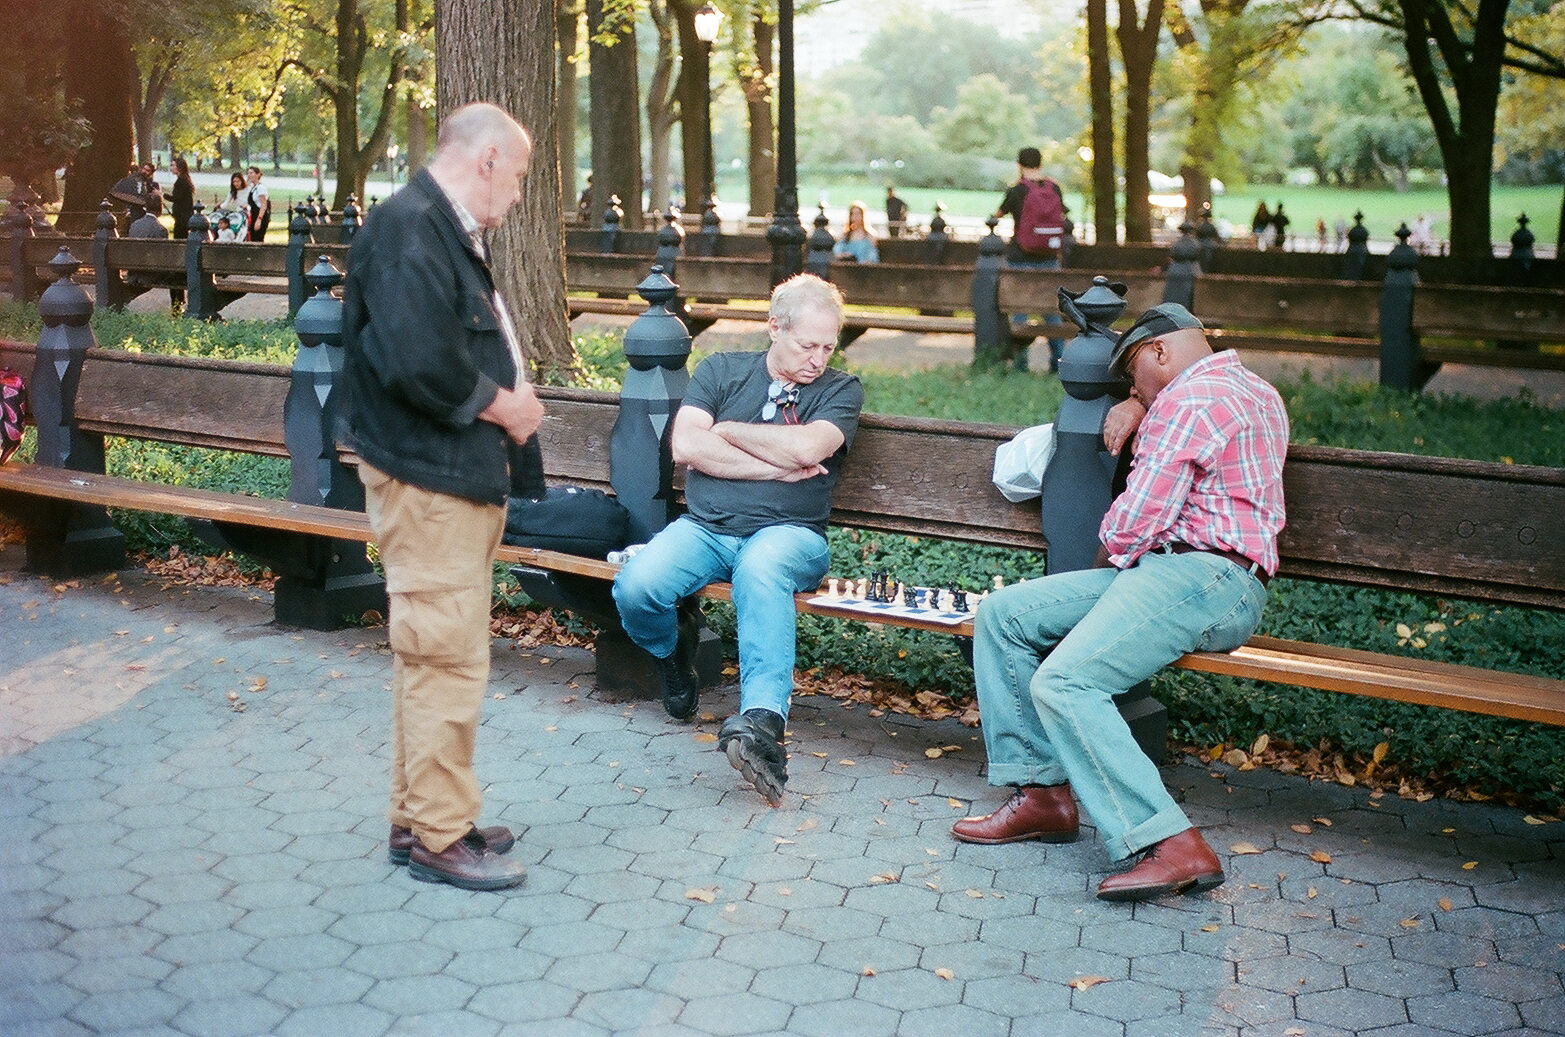 Chess Game with Spectator, The Mall, Central Park_Film Photography_NYC_Joe Curry Photography_2018.jpg